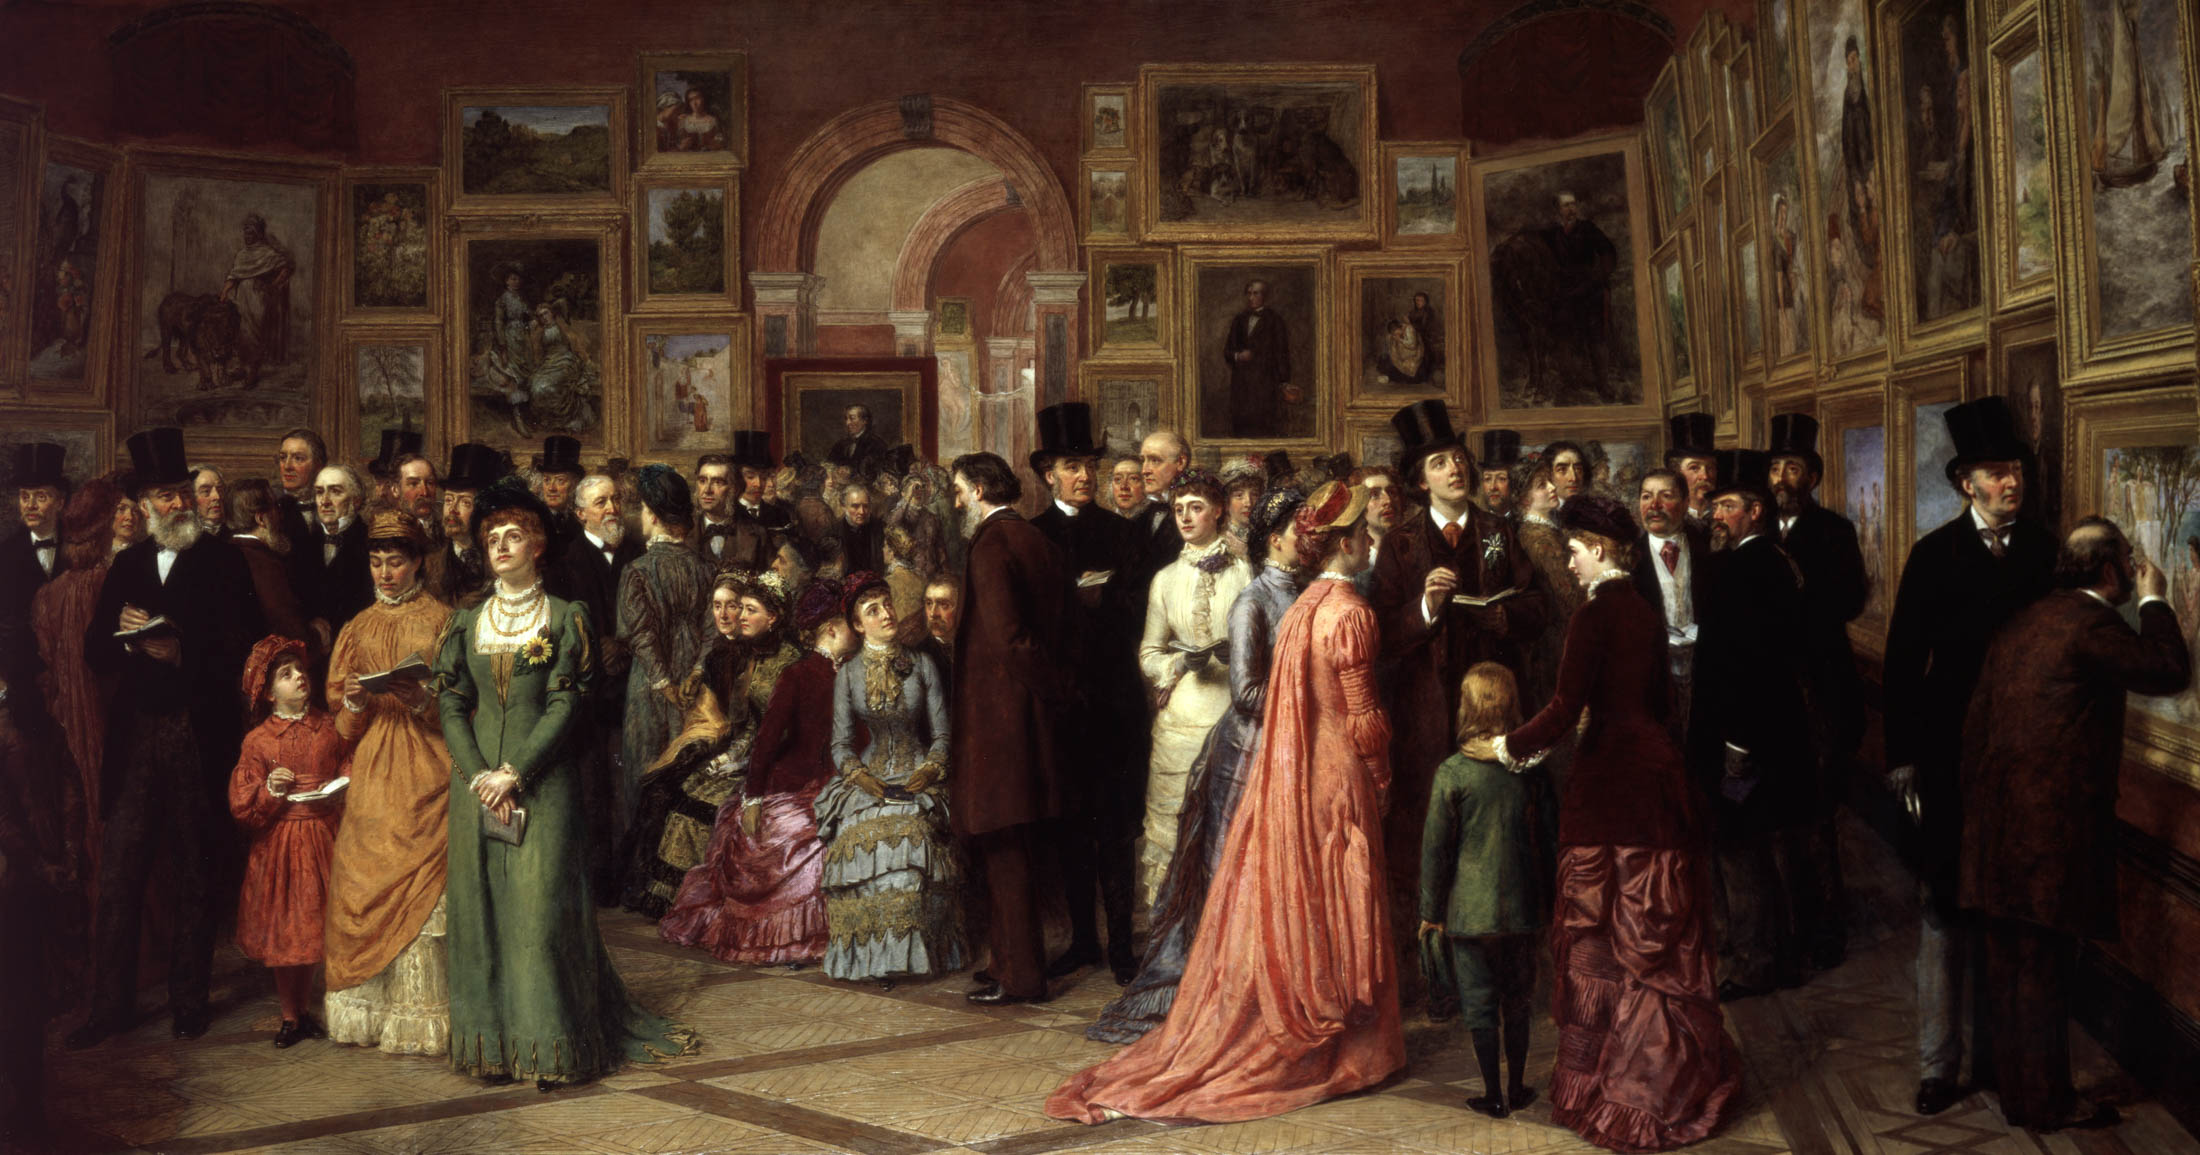 Victorian Painting Wikipedia